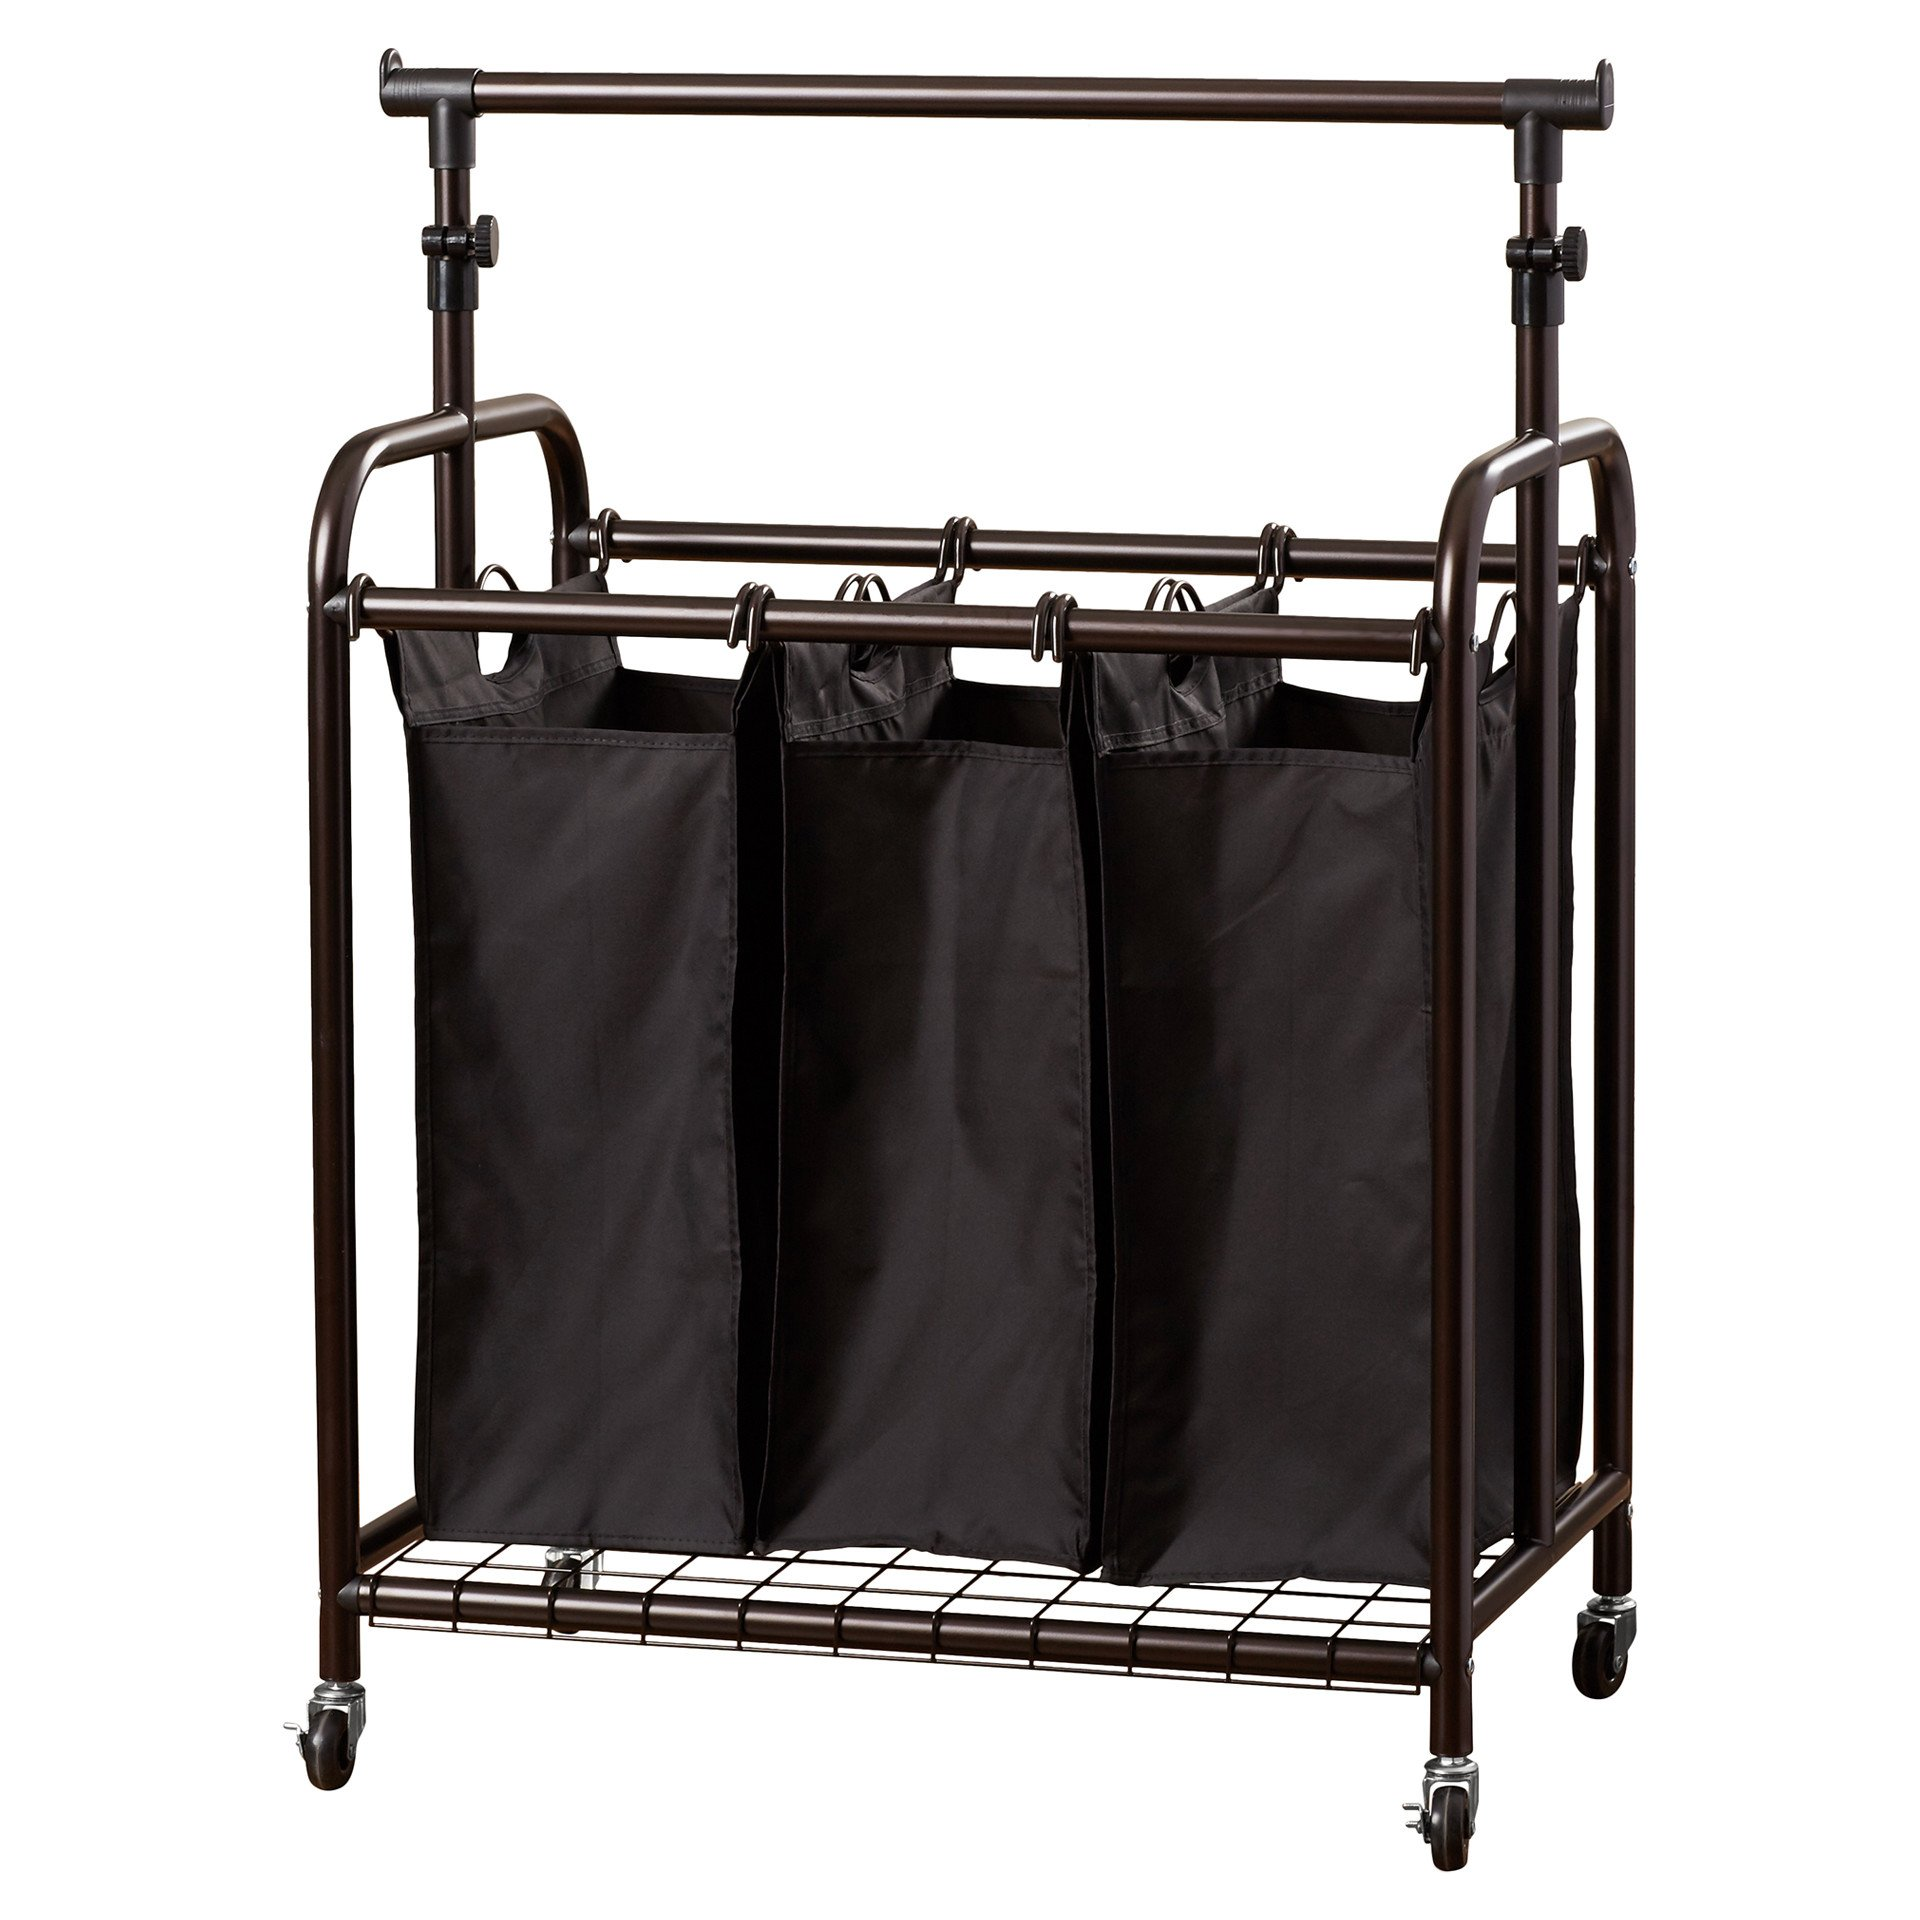 Perfect For Big Families 3 Bag Rolling Contemporary Laundry Sorter with Adjustable Hanging Bar